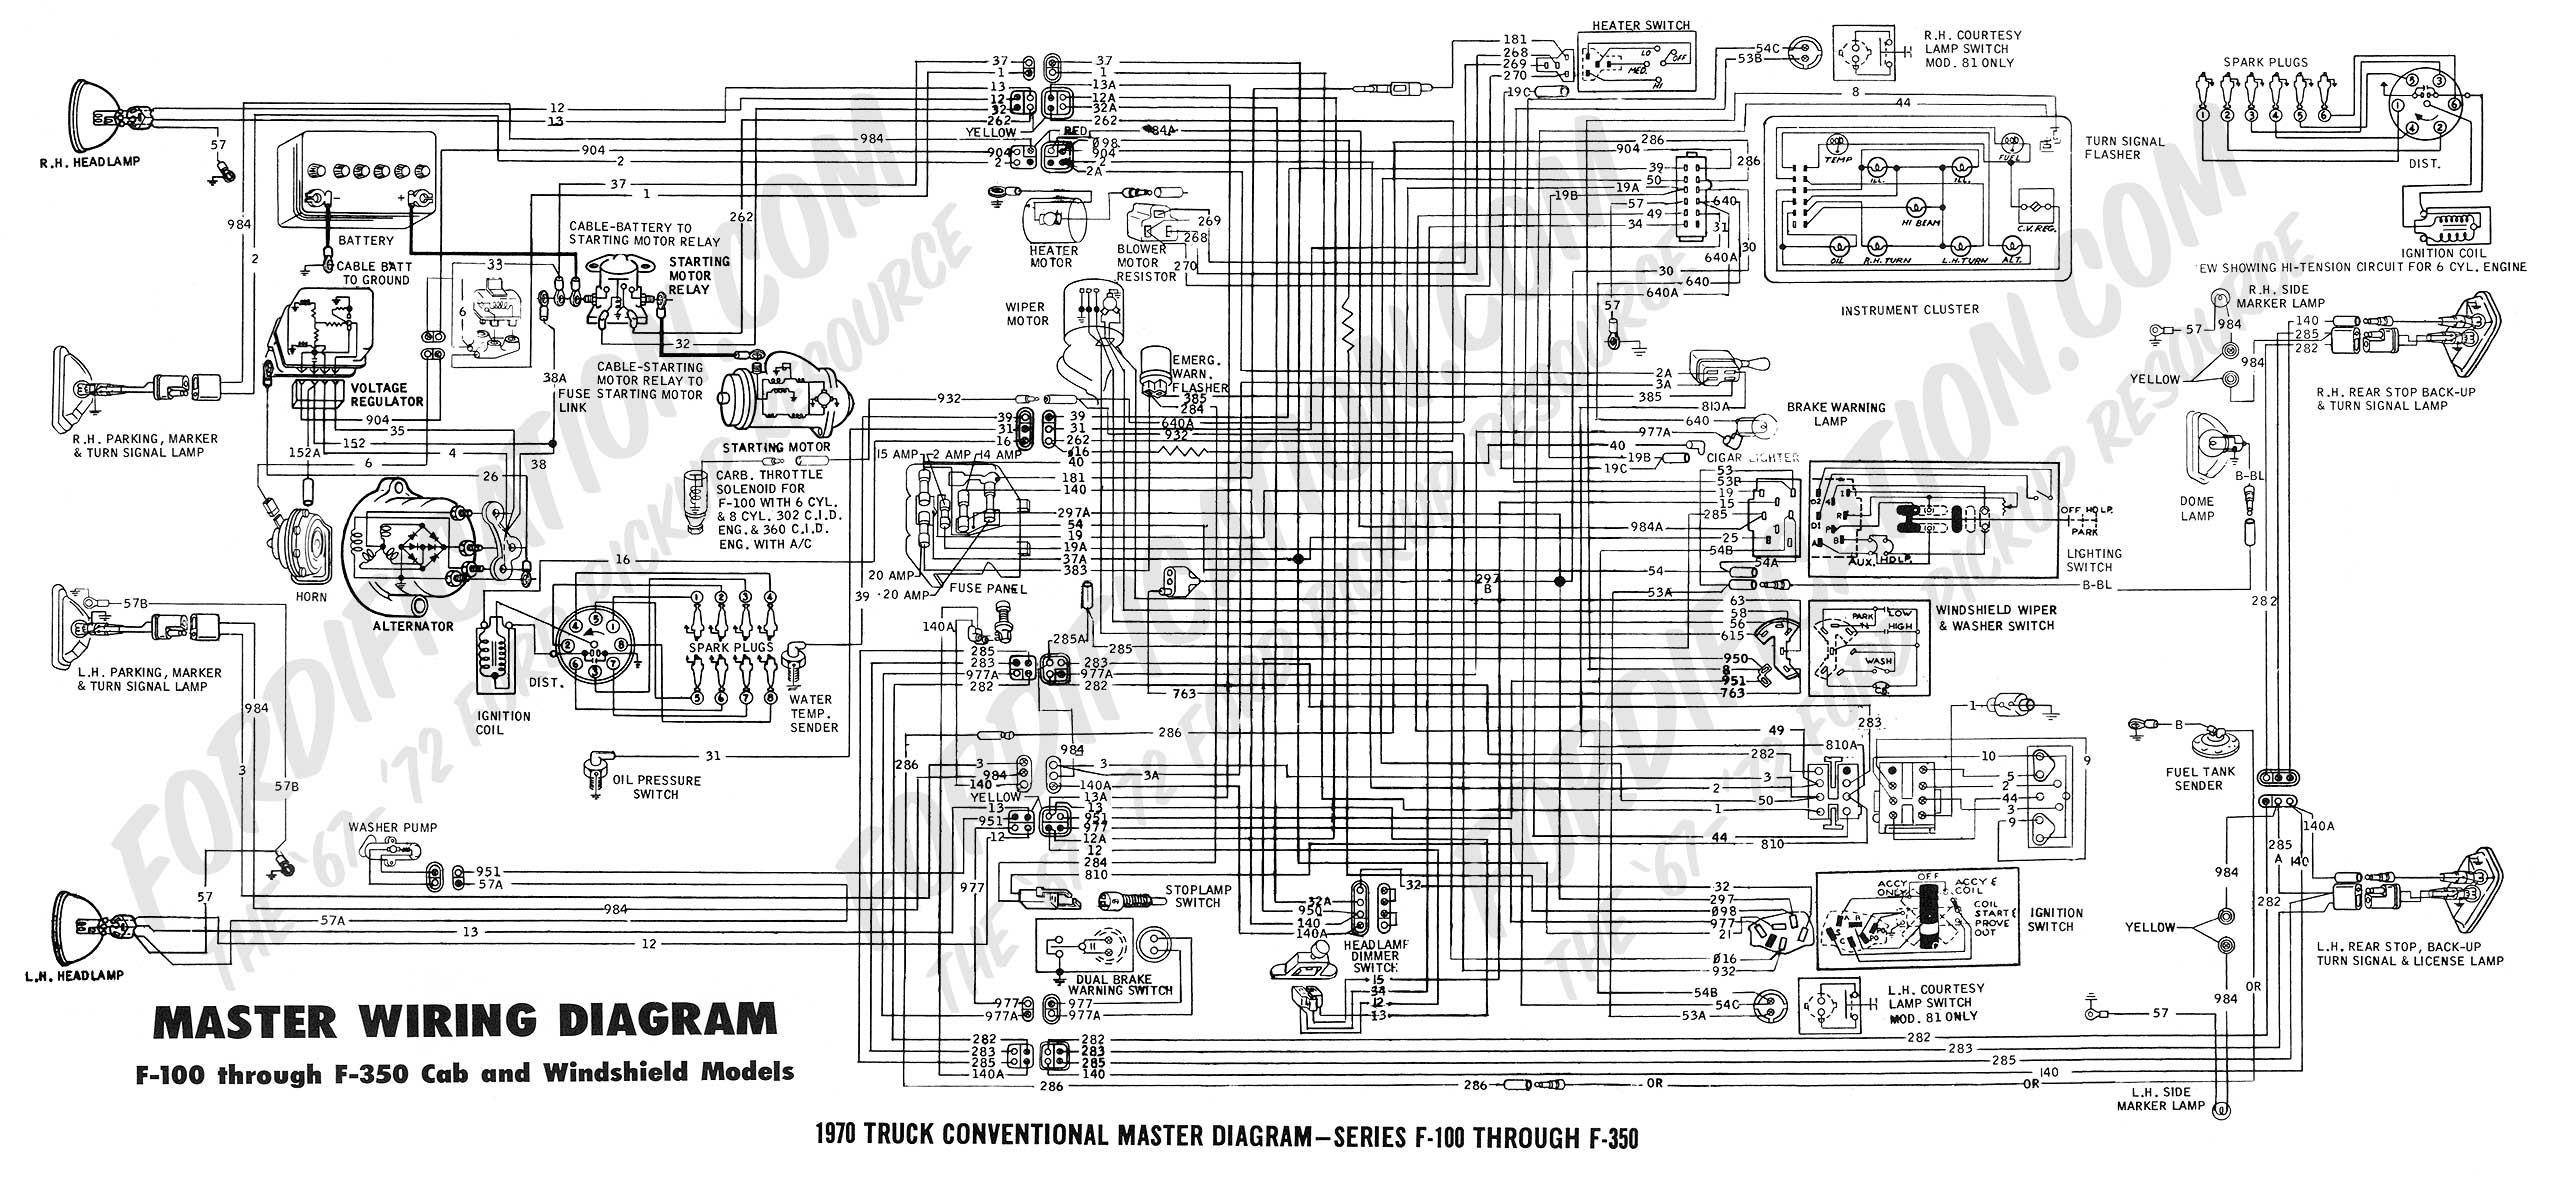 69F38 Free Toyota Wiring Diagram User Manual | Wiring Library